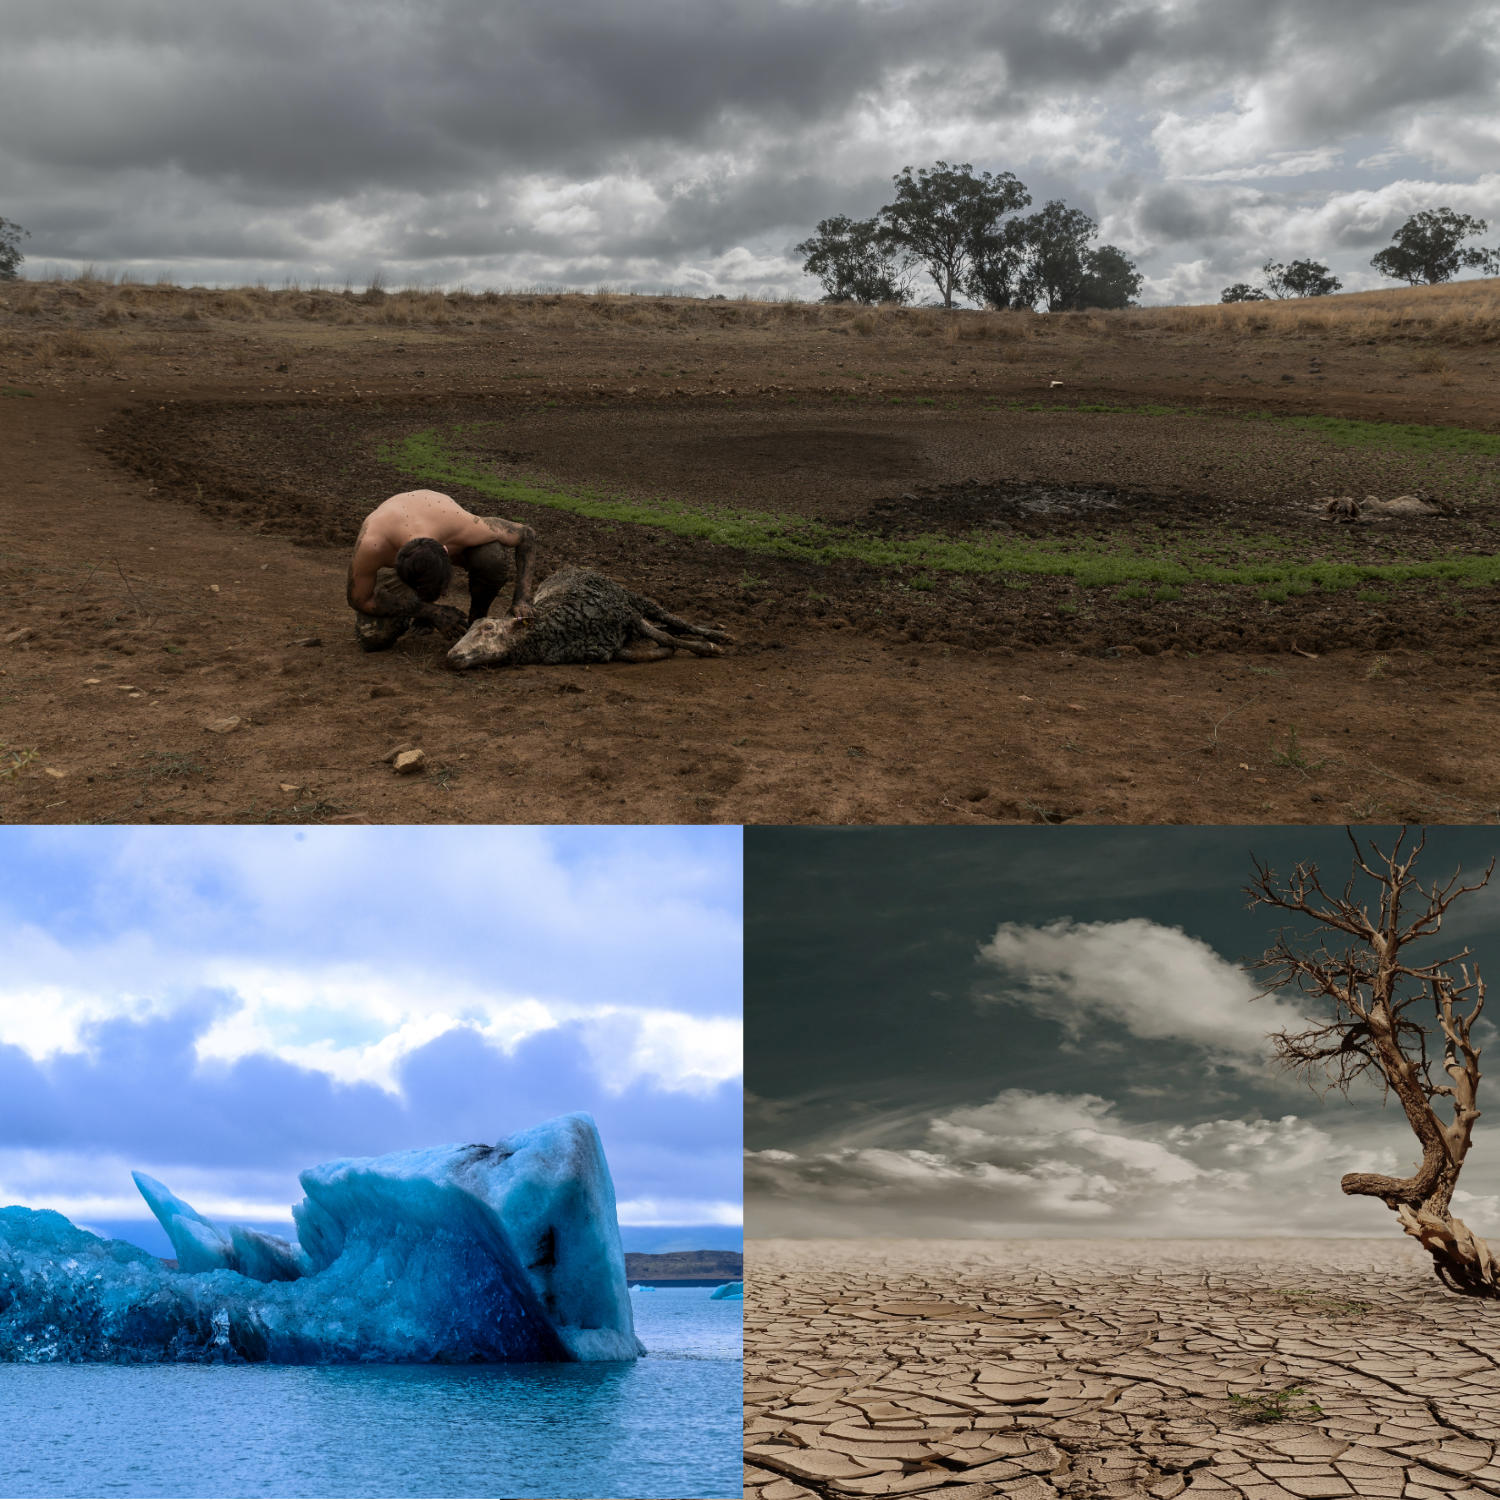 Climatic-change-consequences